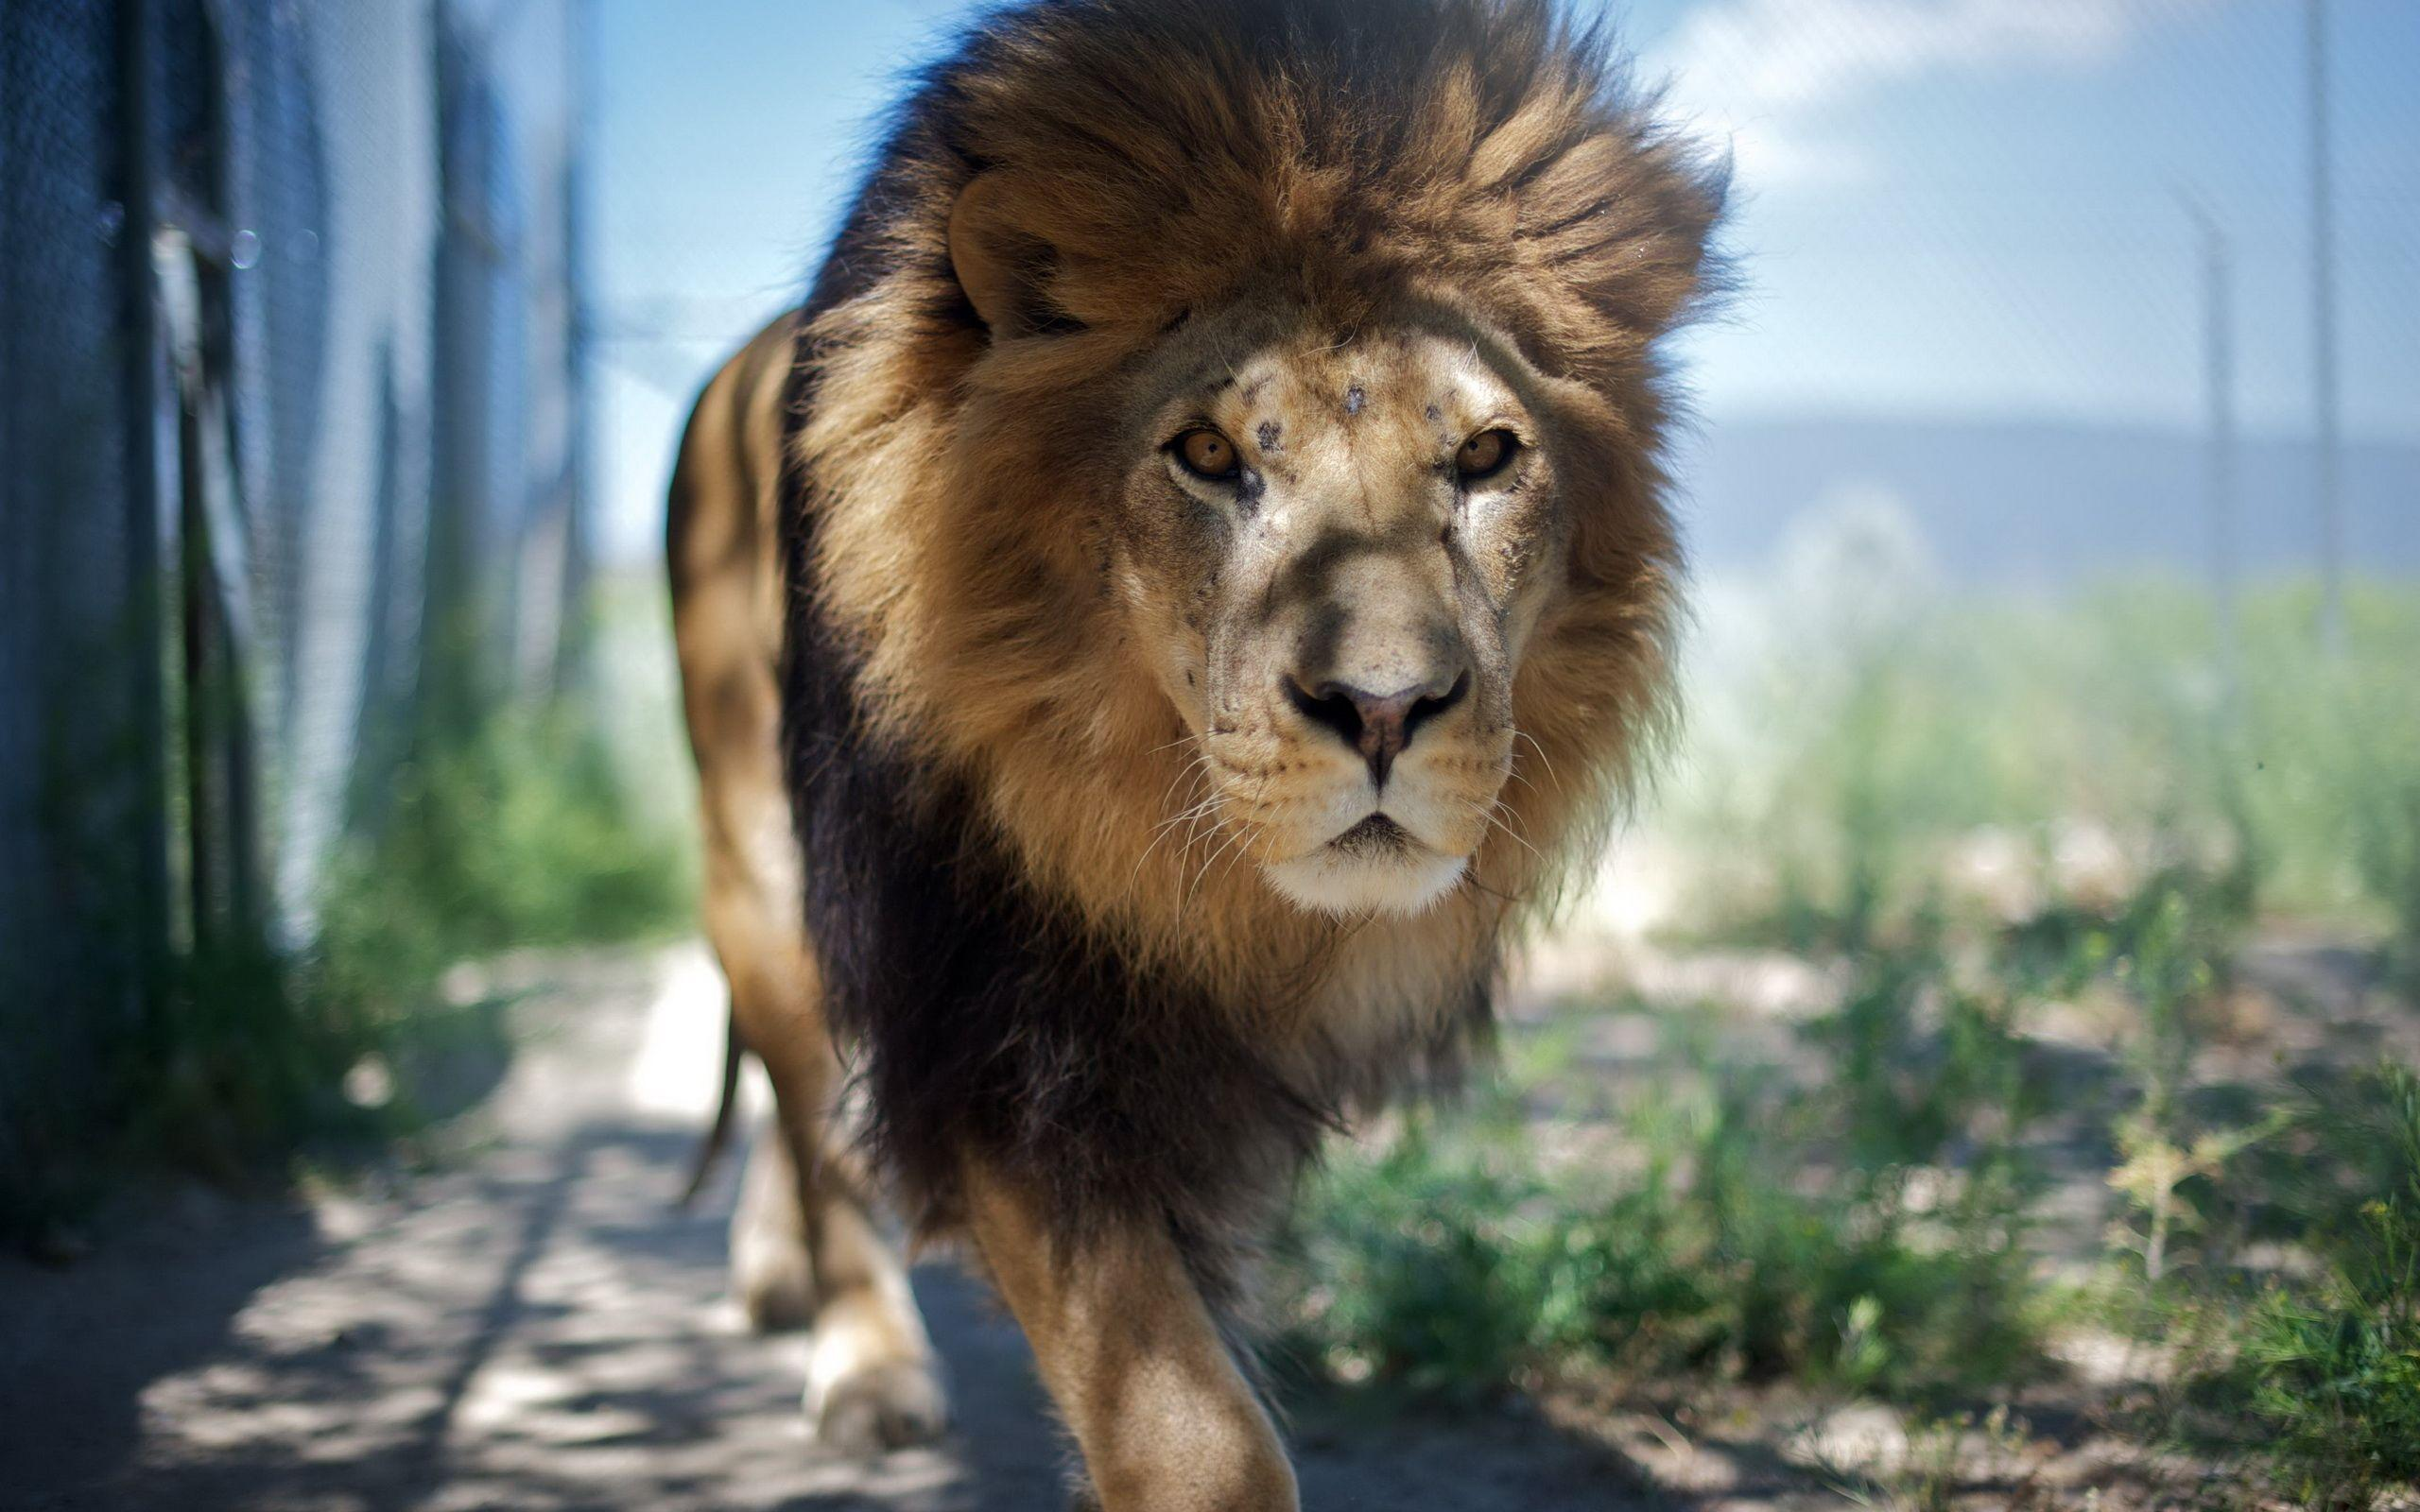 Adult Lion wallpapers and images - wallpapers, pictures, photos